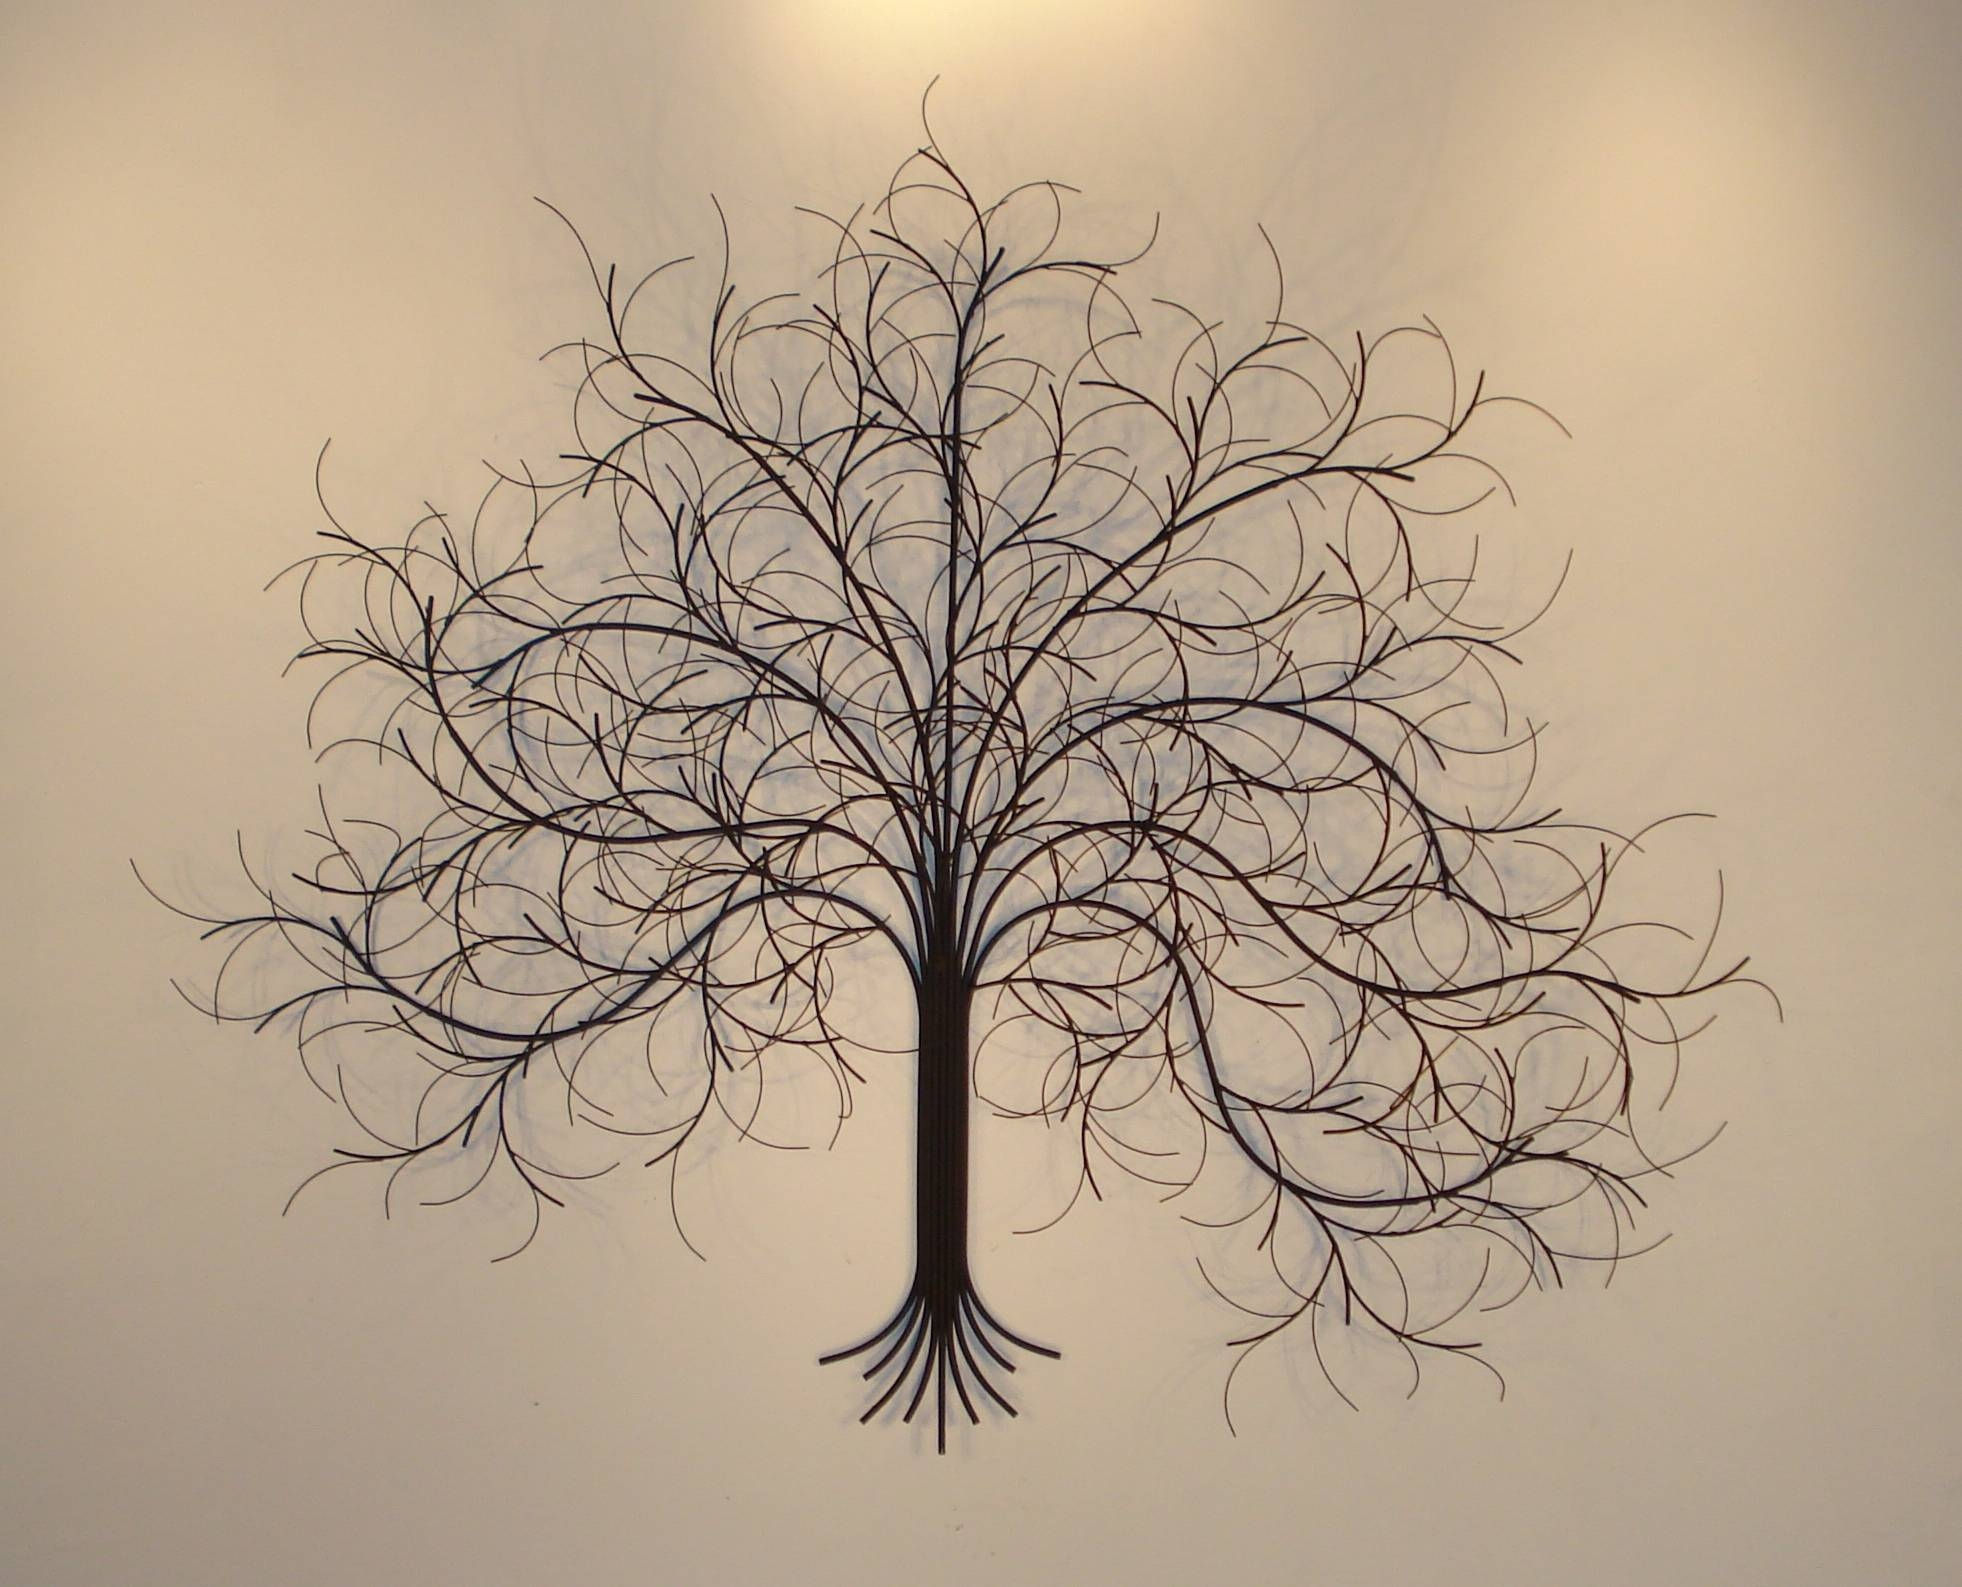 March Tree Metal Wall Art – Metal Sculpture And Wall Decor For Latest Black Metal Wall Art (View 5 of 20)